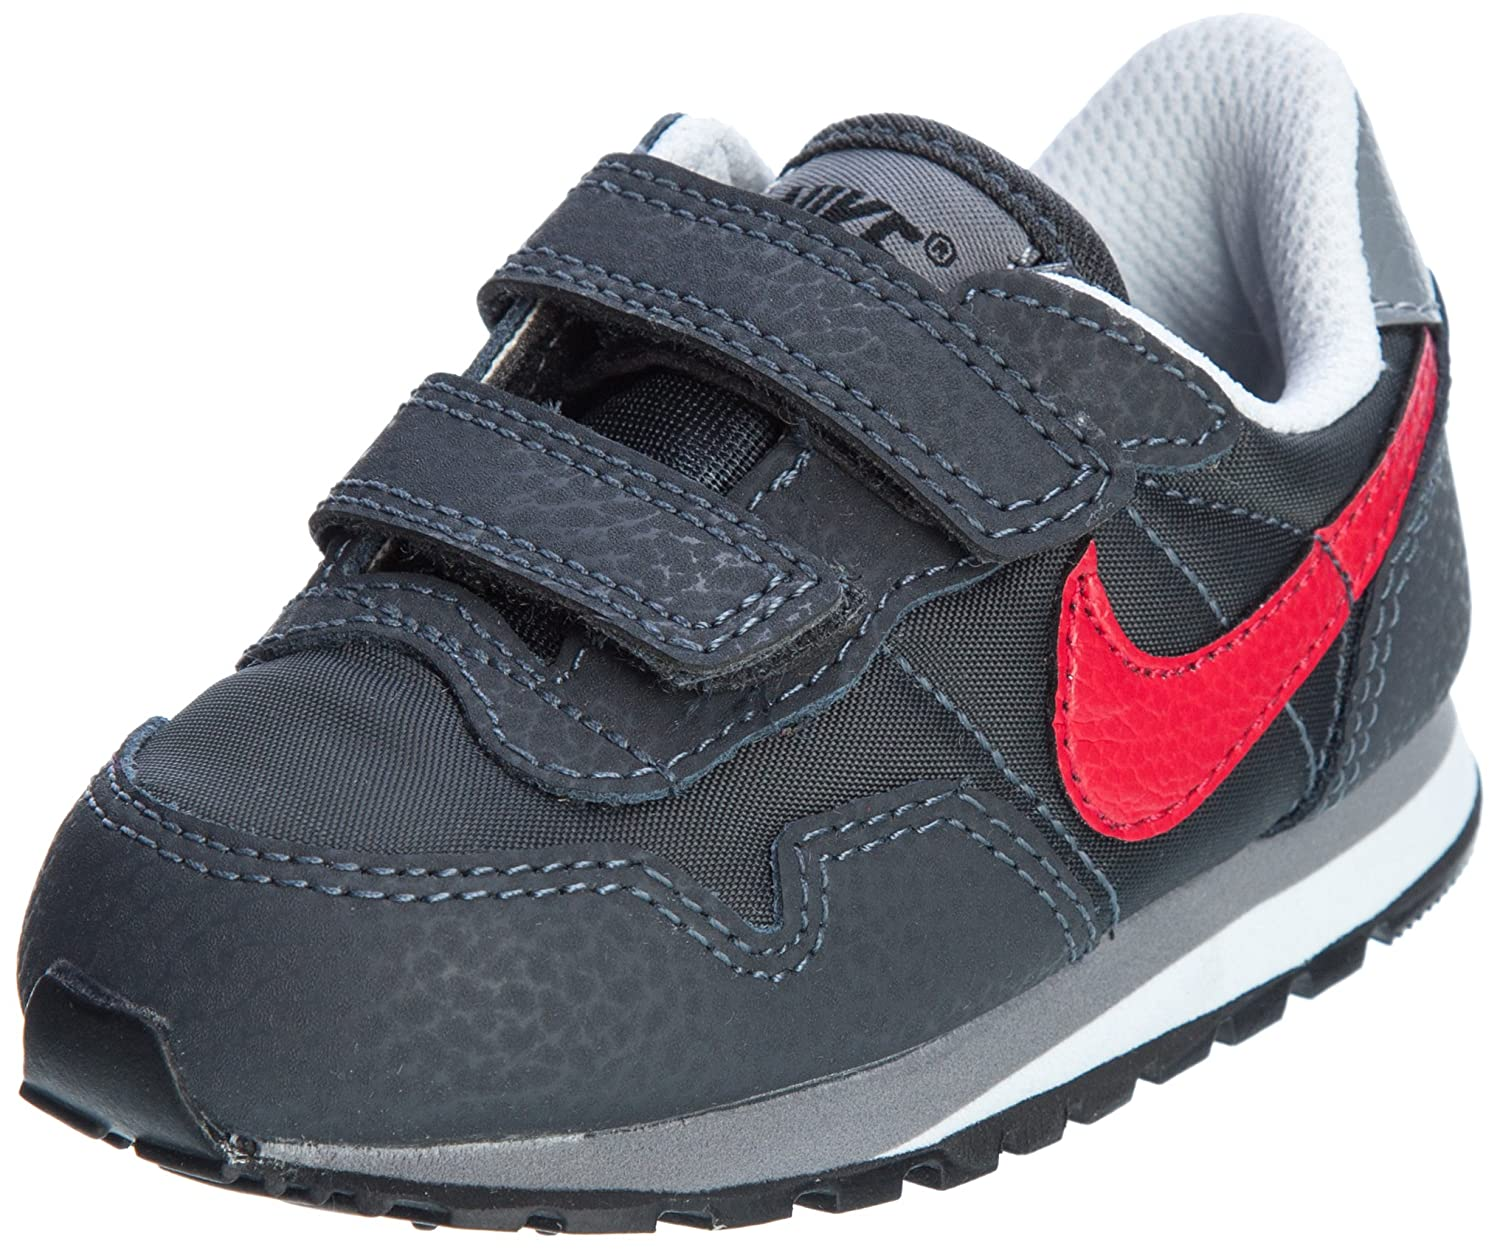 NIKE Retro GP Infant Sporttraining Schuhe